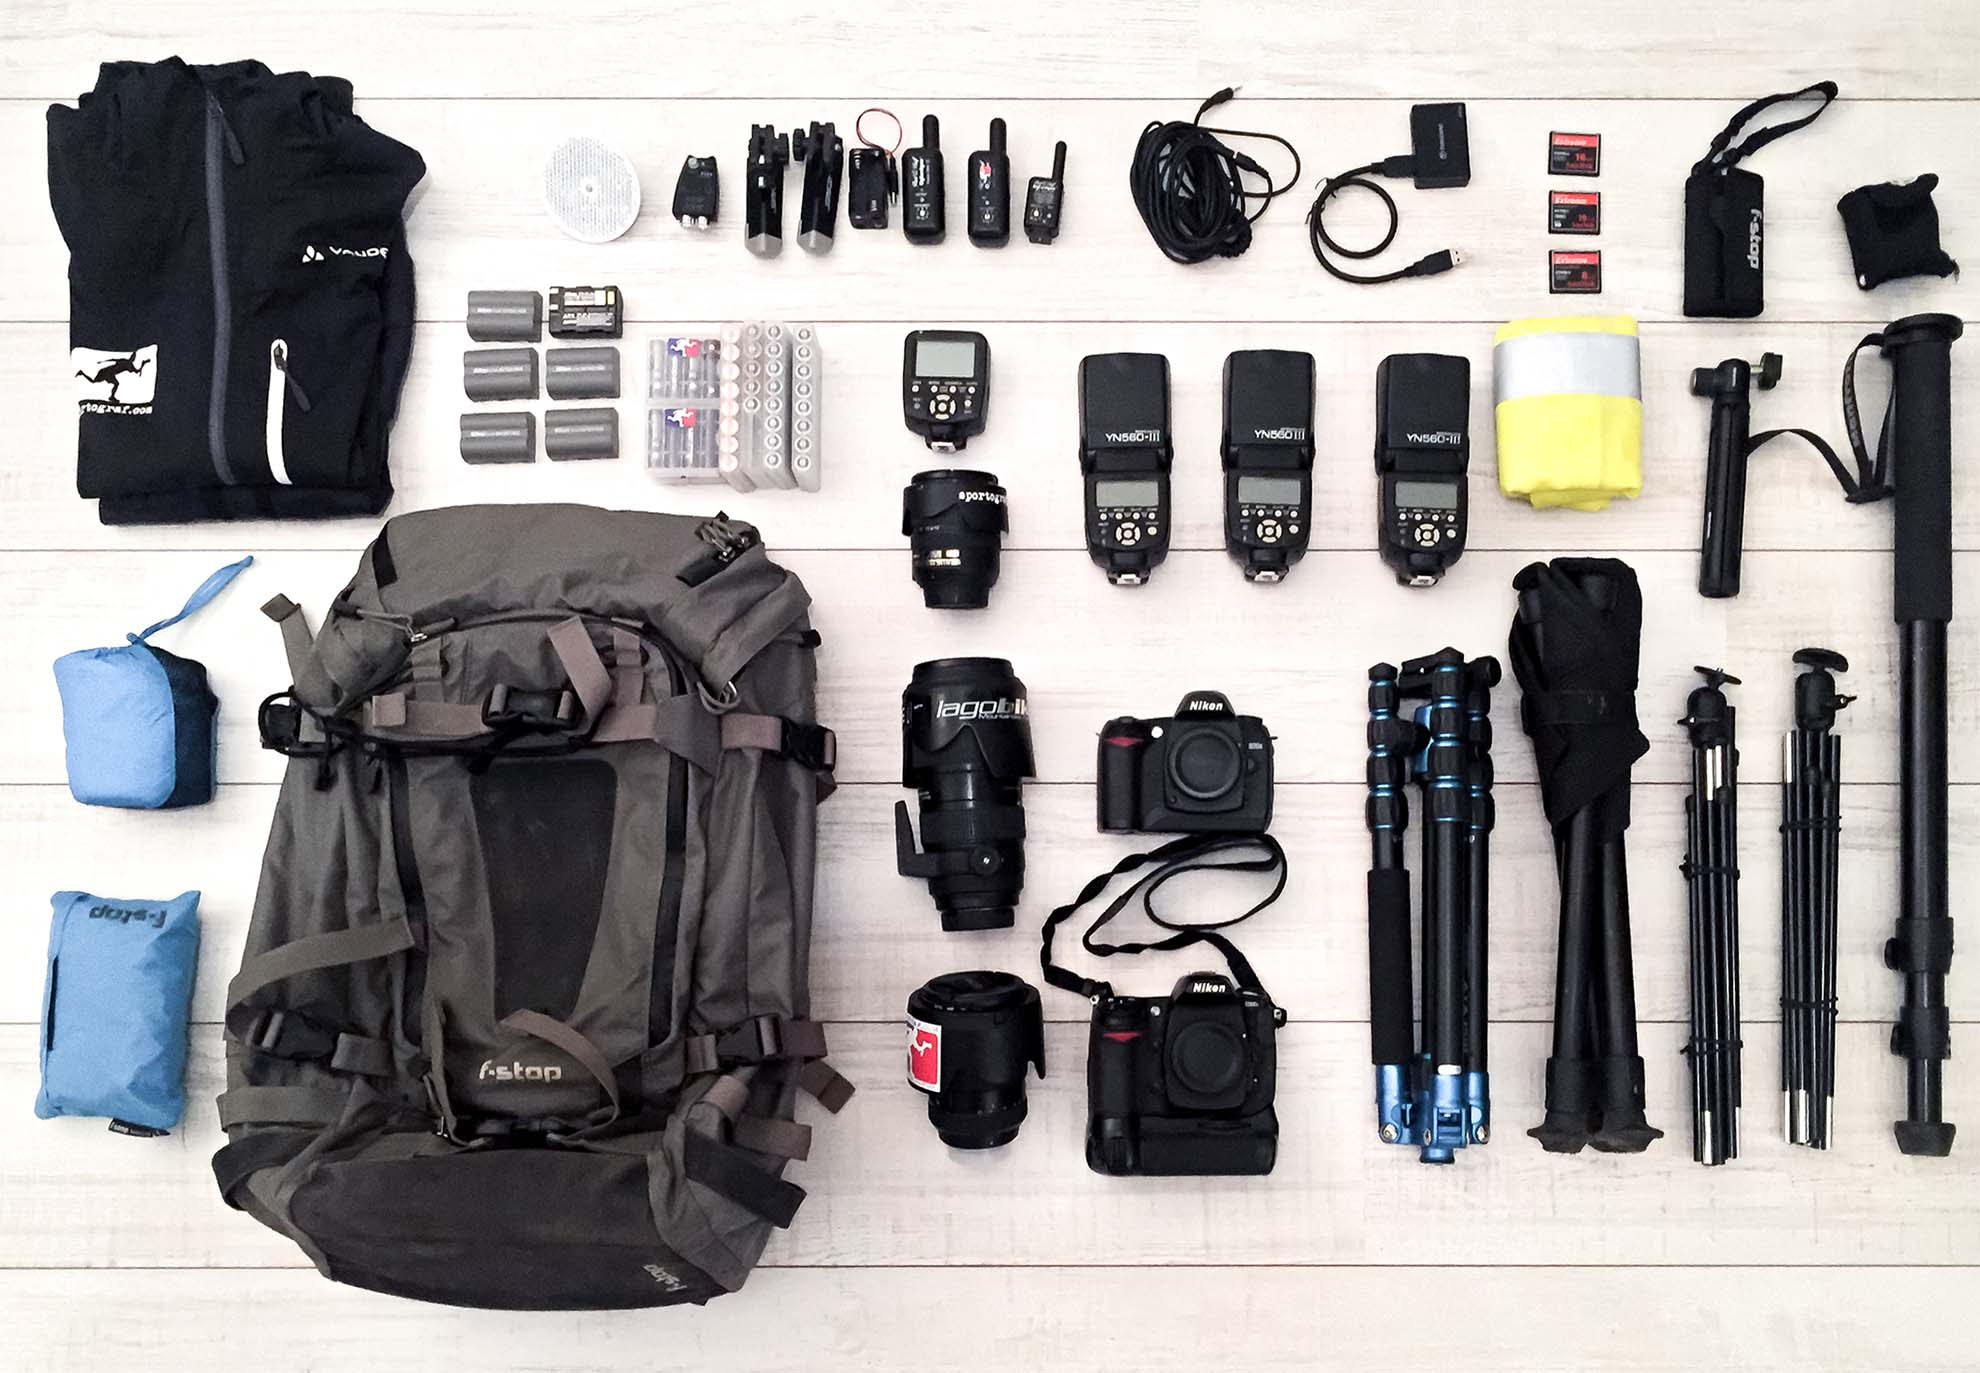 All the heavy gear before switching to lighter mobile photo gear